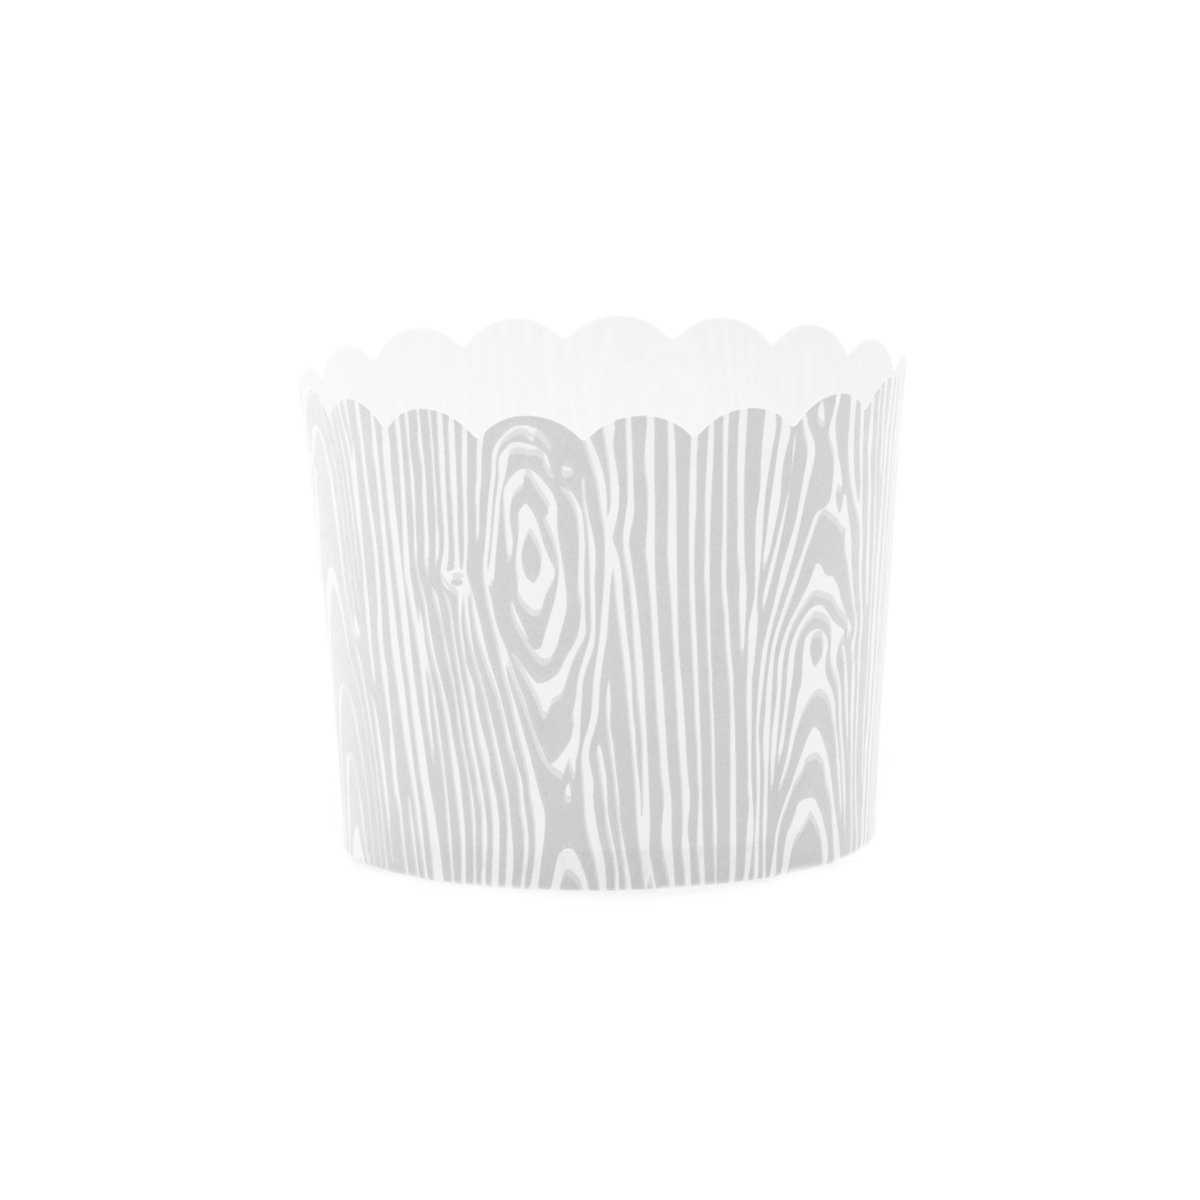 Simply Baked Large Paper Baking Cup, Birch Faux Wood Grain, 500 Pack, Disposable & Oven-Safe